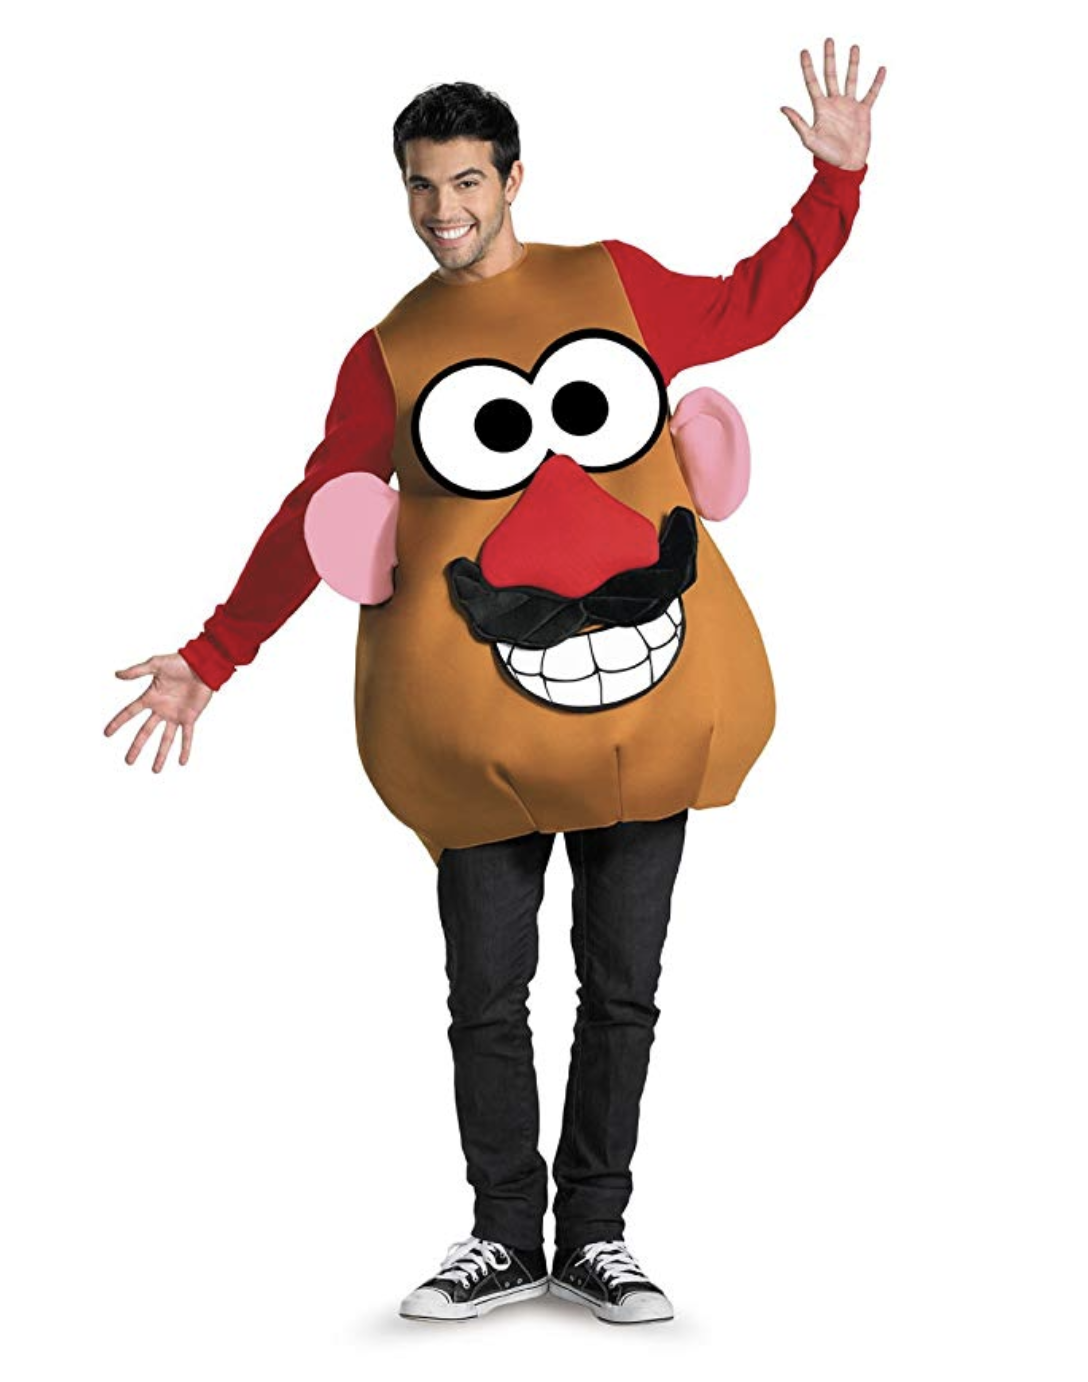 Disguise's Mr./Mrs. Potato Head Costume